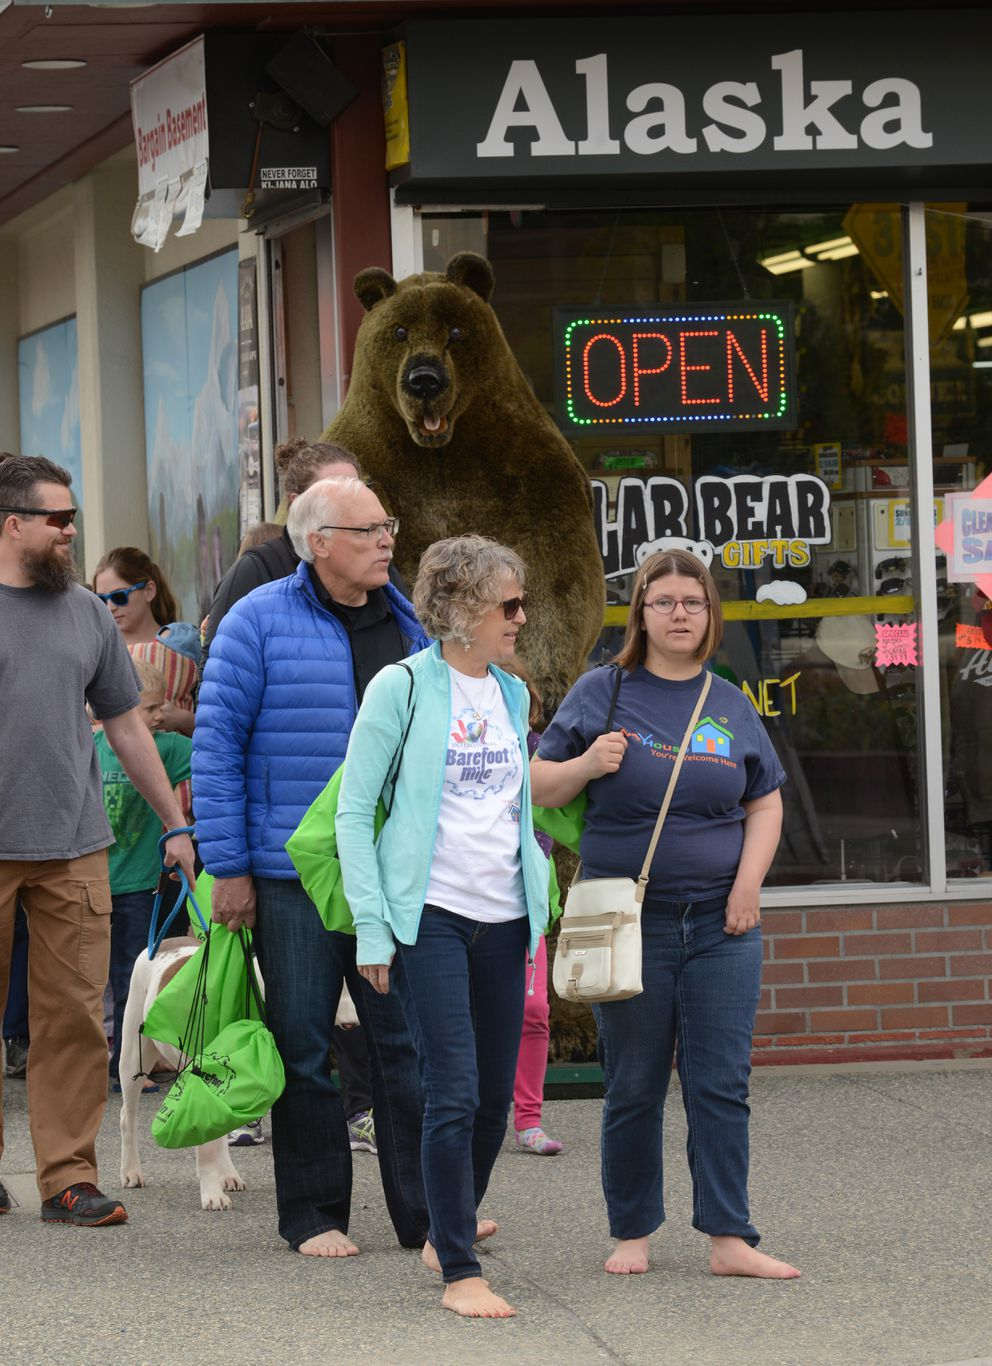 The Barefoot Mile walk was a fundraiser for Priceless Alaska, Covenant House, MyHouse and Joy International. (Bob Hallinen / Alaska Dispatch News)